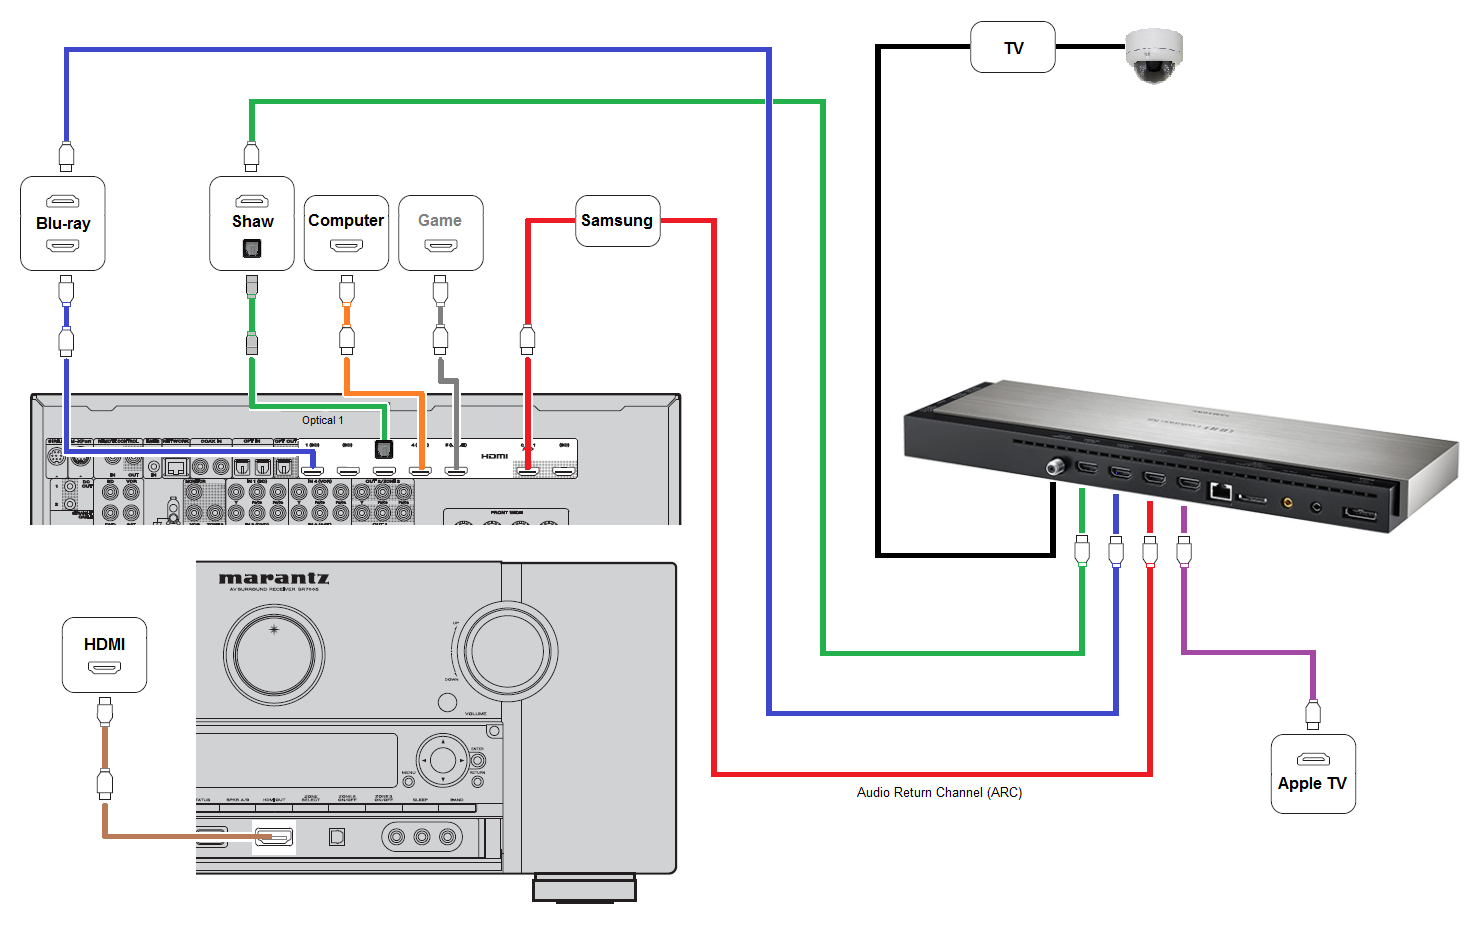 apple tv wiring diagram learn how to cut the cord and get dvr out official samsung k hu and hu th page avs click image for larger version wiring diagram